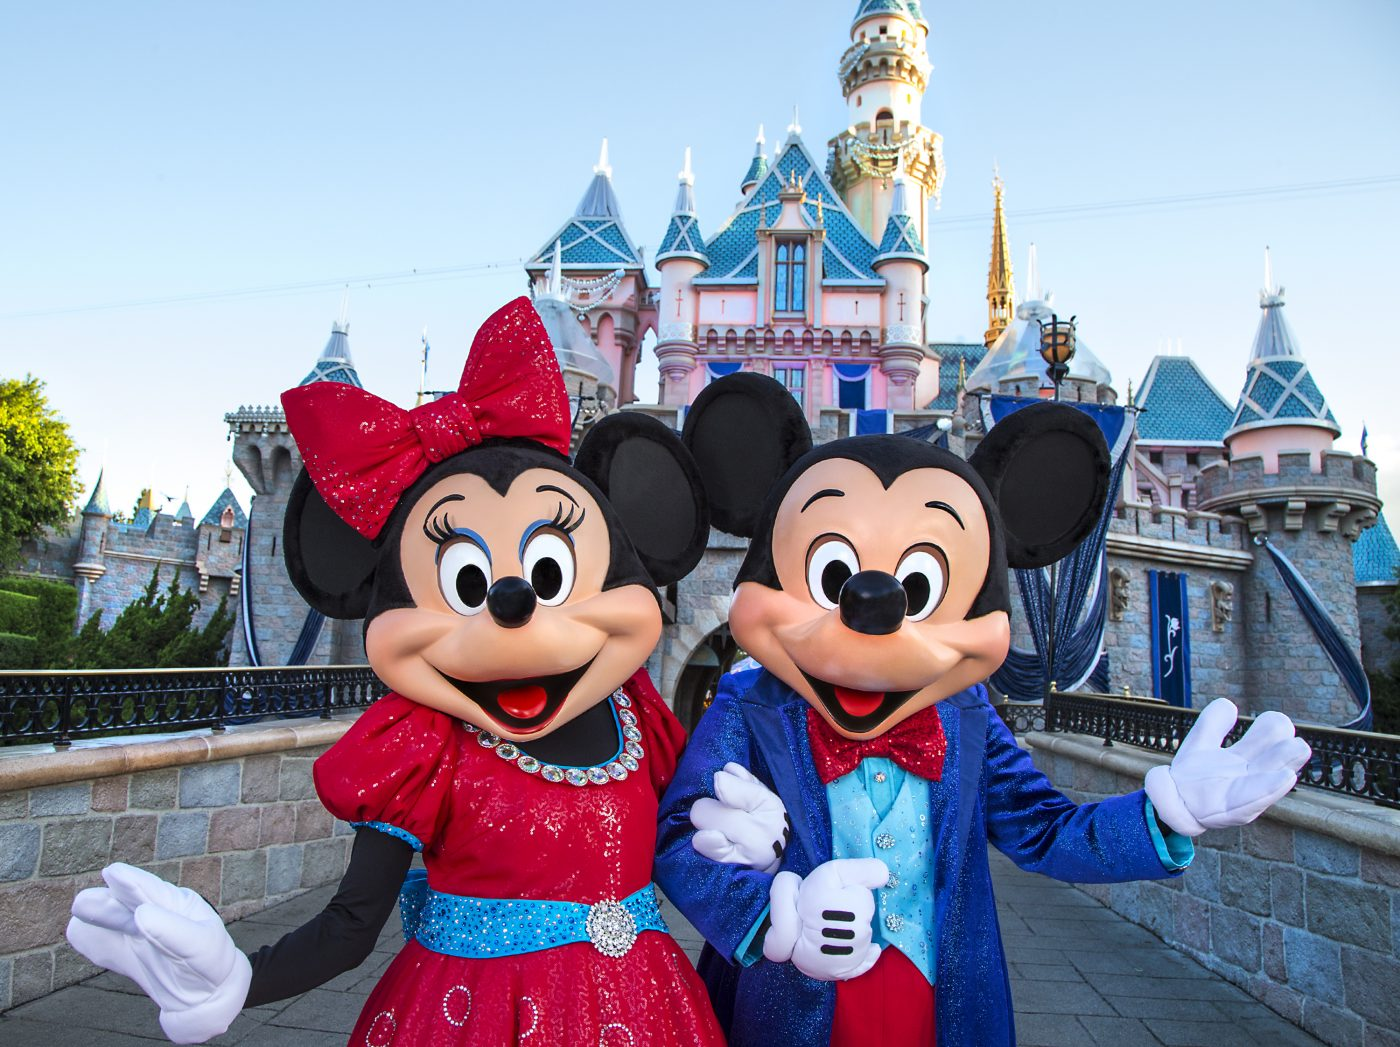 Free Walt Disney World Resort/Disneyland Resort vacation for family of 4